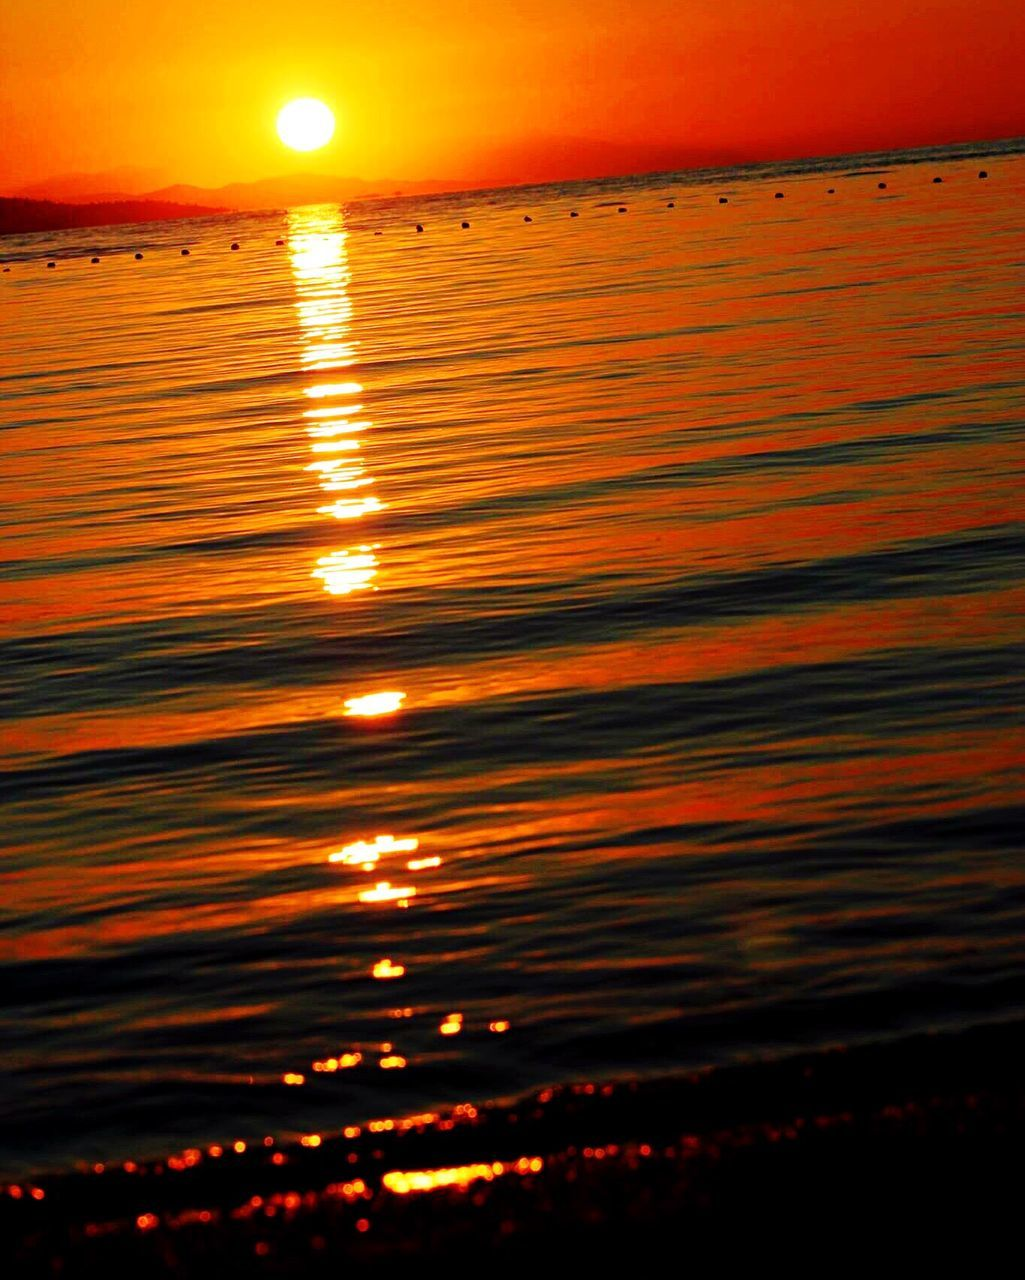 sunset, sea, water, reflection, beauty in nature, scenics, nature, orange color, tranquil scene, sun, tranquility, beach, outdoors, no people, sky, horizon over water, rippled, waterfront, horizon, close-up